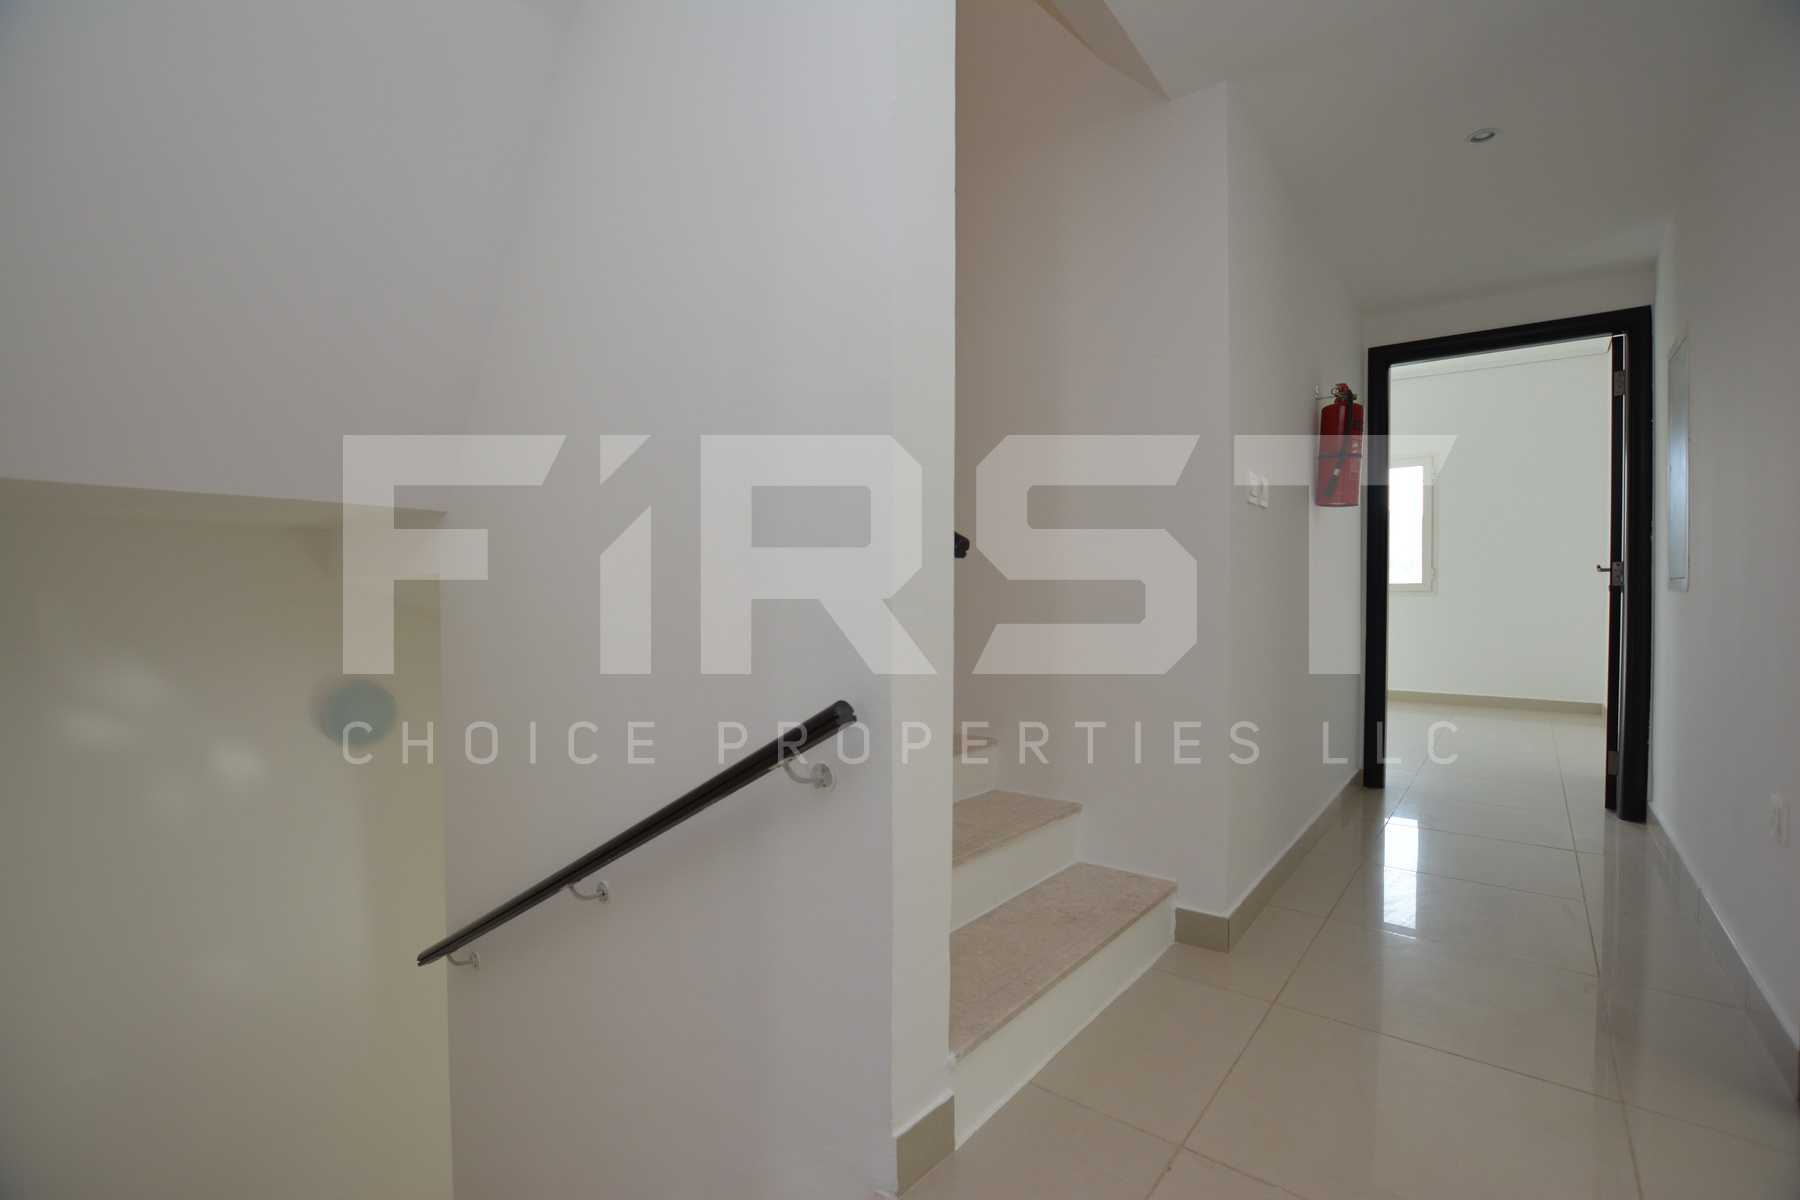 Internal Photo of 5 Bedroom Villa in Al Reef Villas 348.3 sq.m 3749 sq.ft (95).jpg